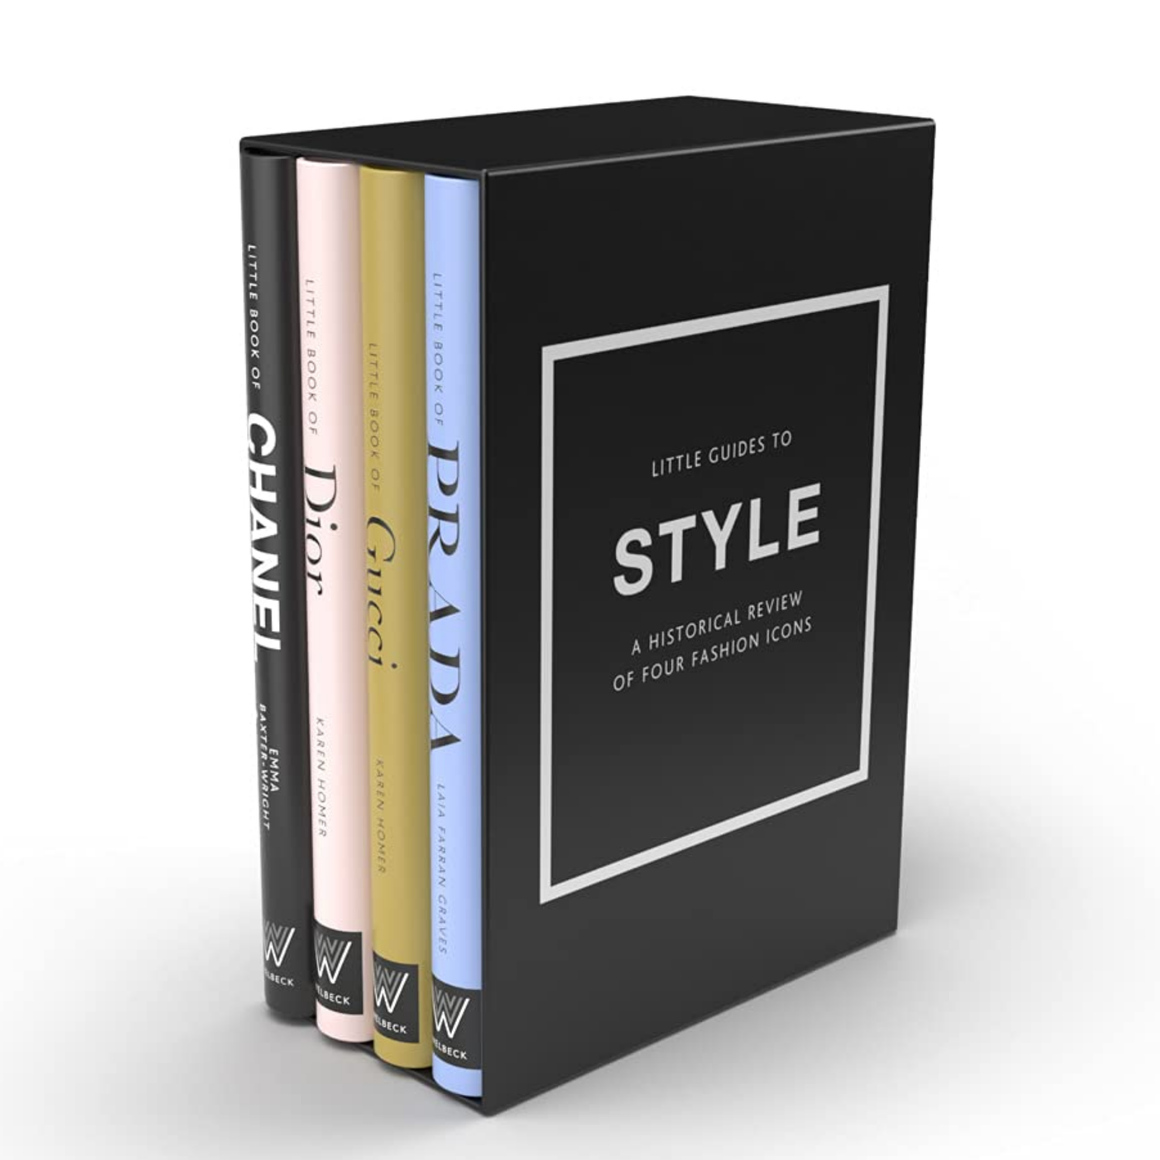 LITTLE BOOK OF STYLE: THE STORY OF FOUR ICONIC FASHION HOUSES